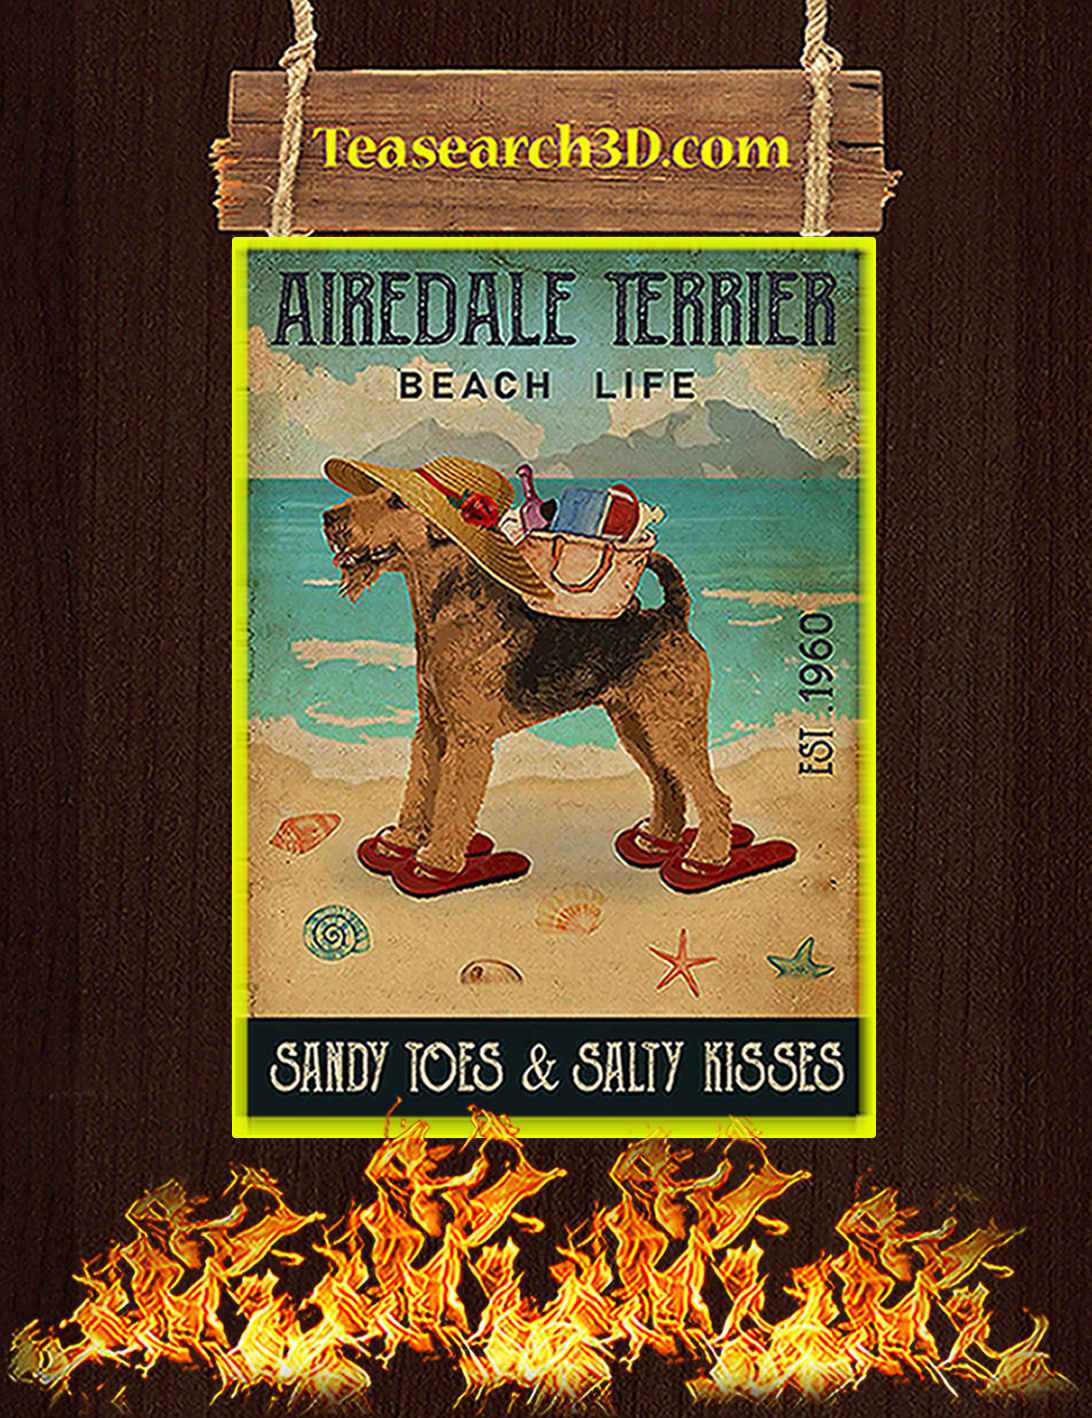 Airedale terrier beach life sandy toes and salty kisses poster A2